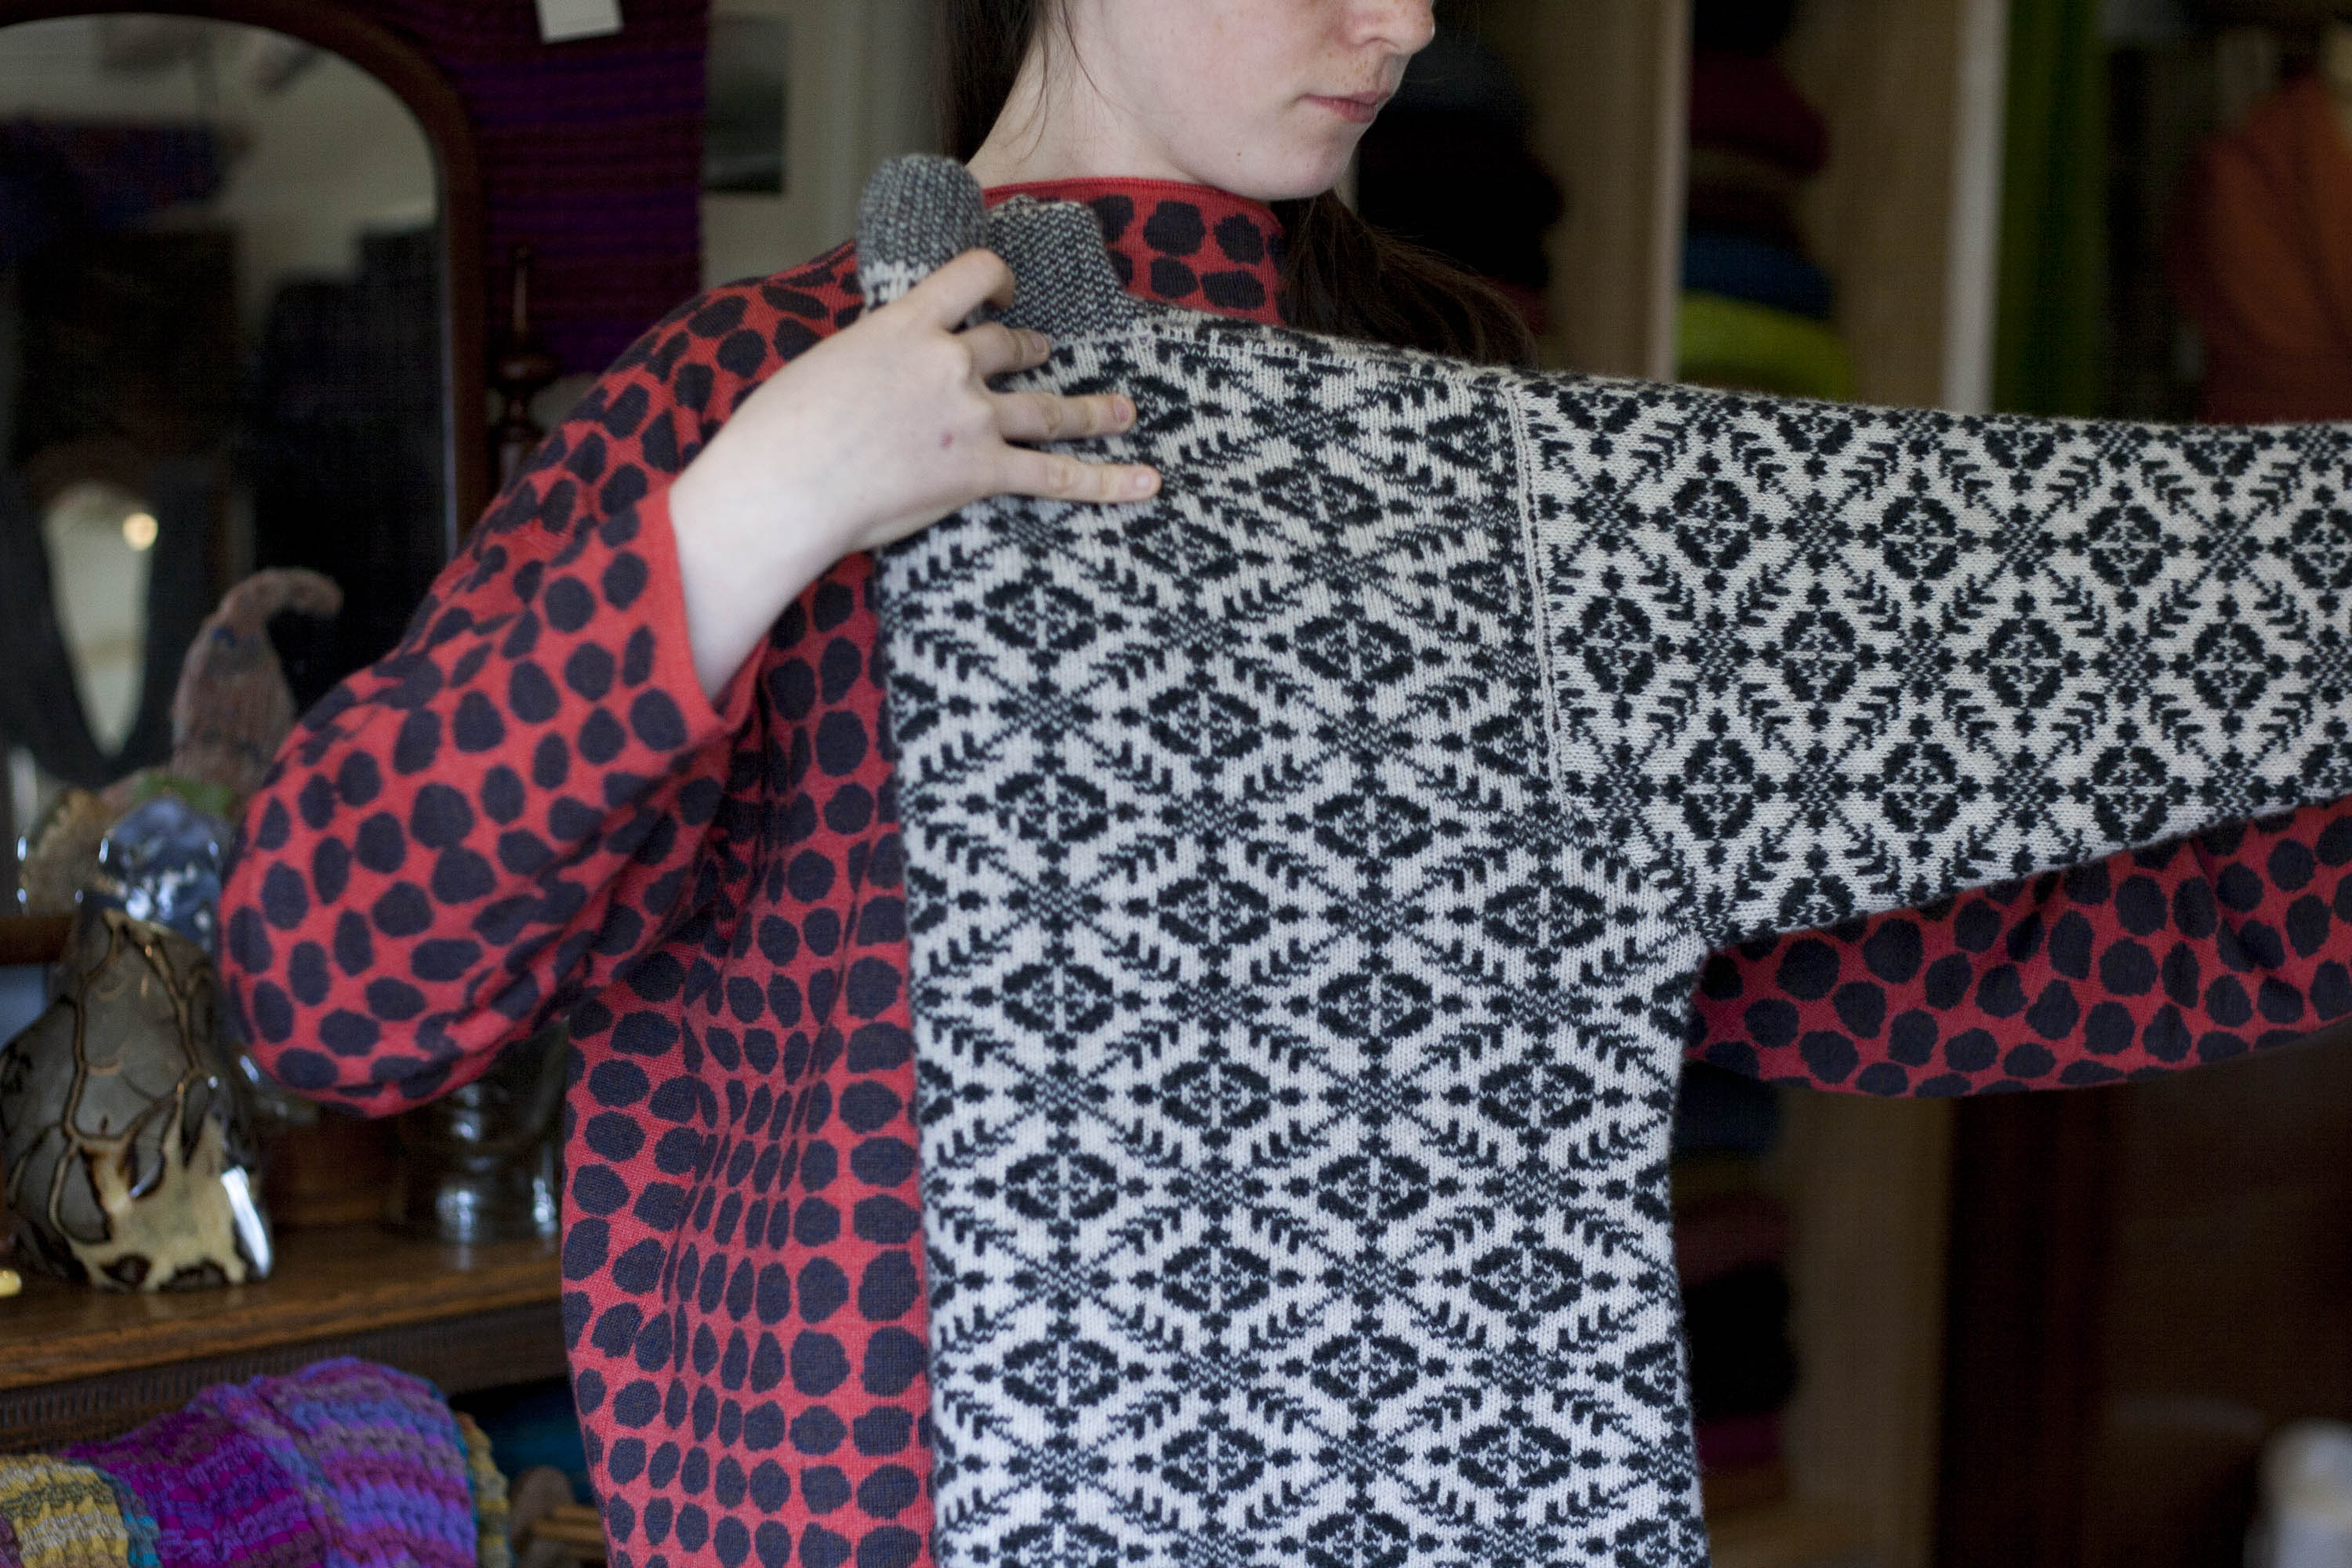 A girl holds a navy and off white patterned Fair Isle jumper by the neck and sleeve, folding it in half